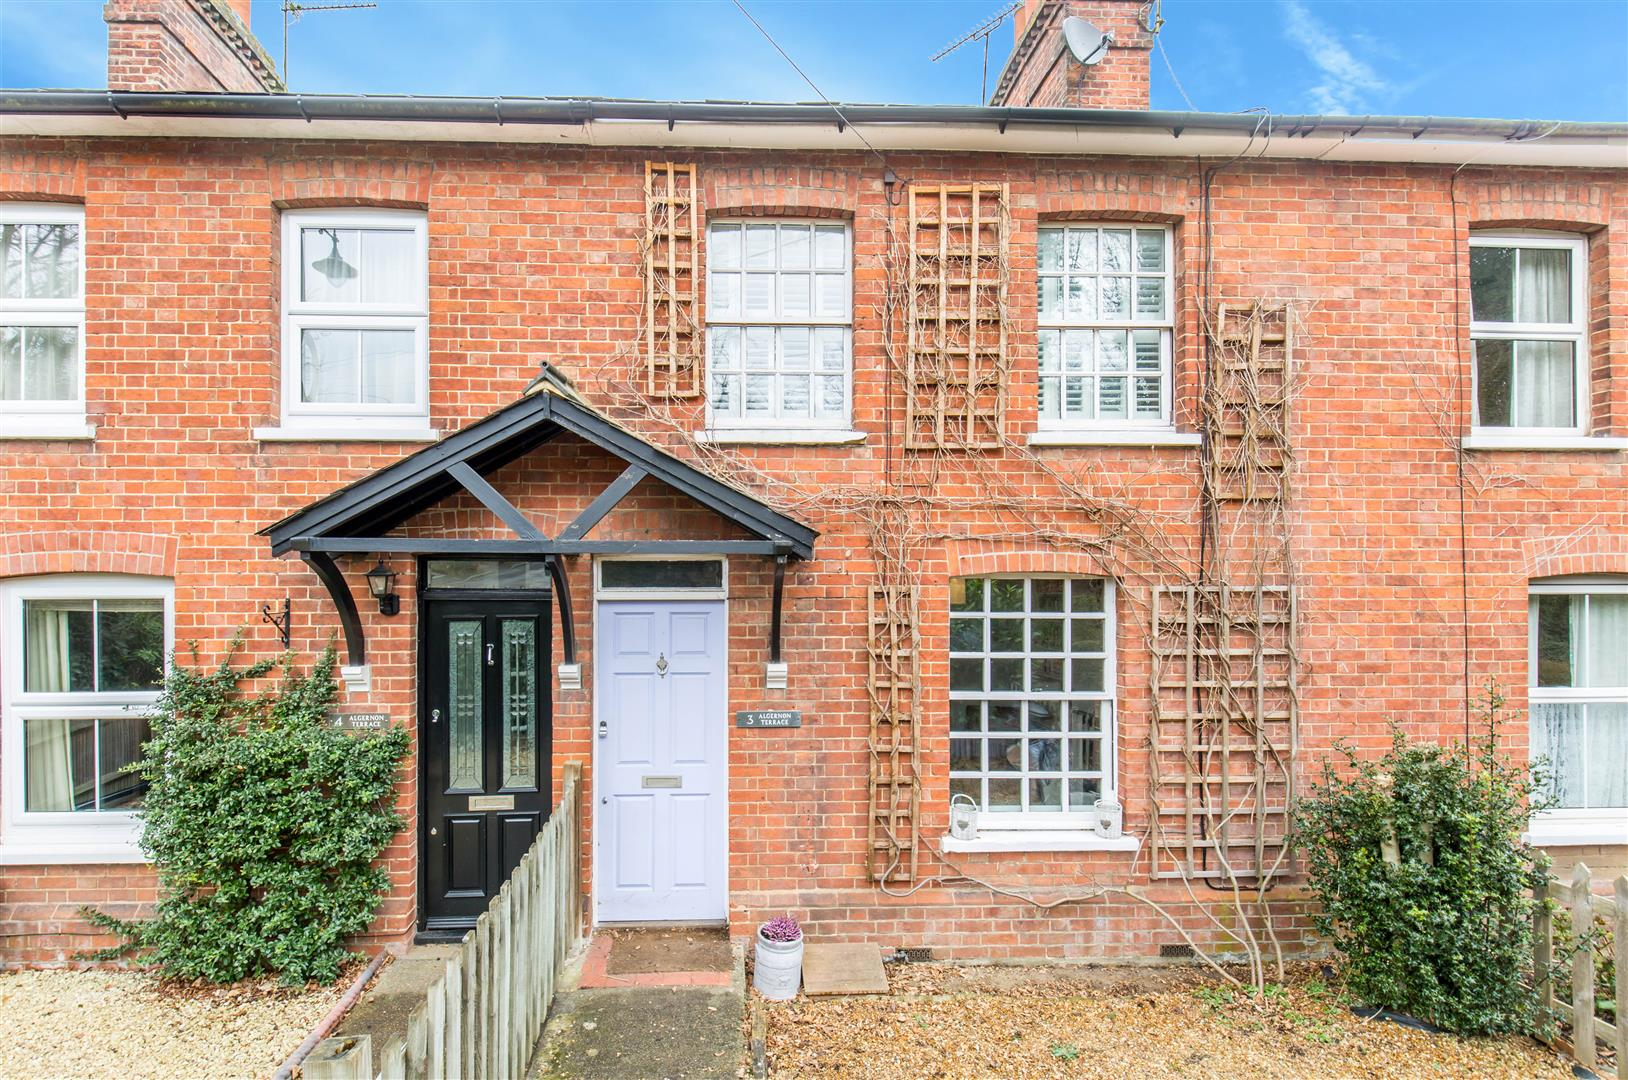 2 Bedrooms Terraced House for sale in High Street, Brasted